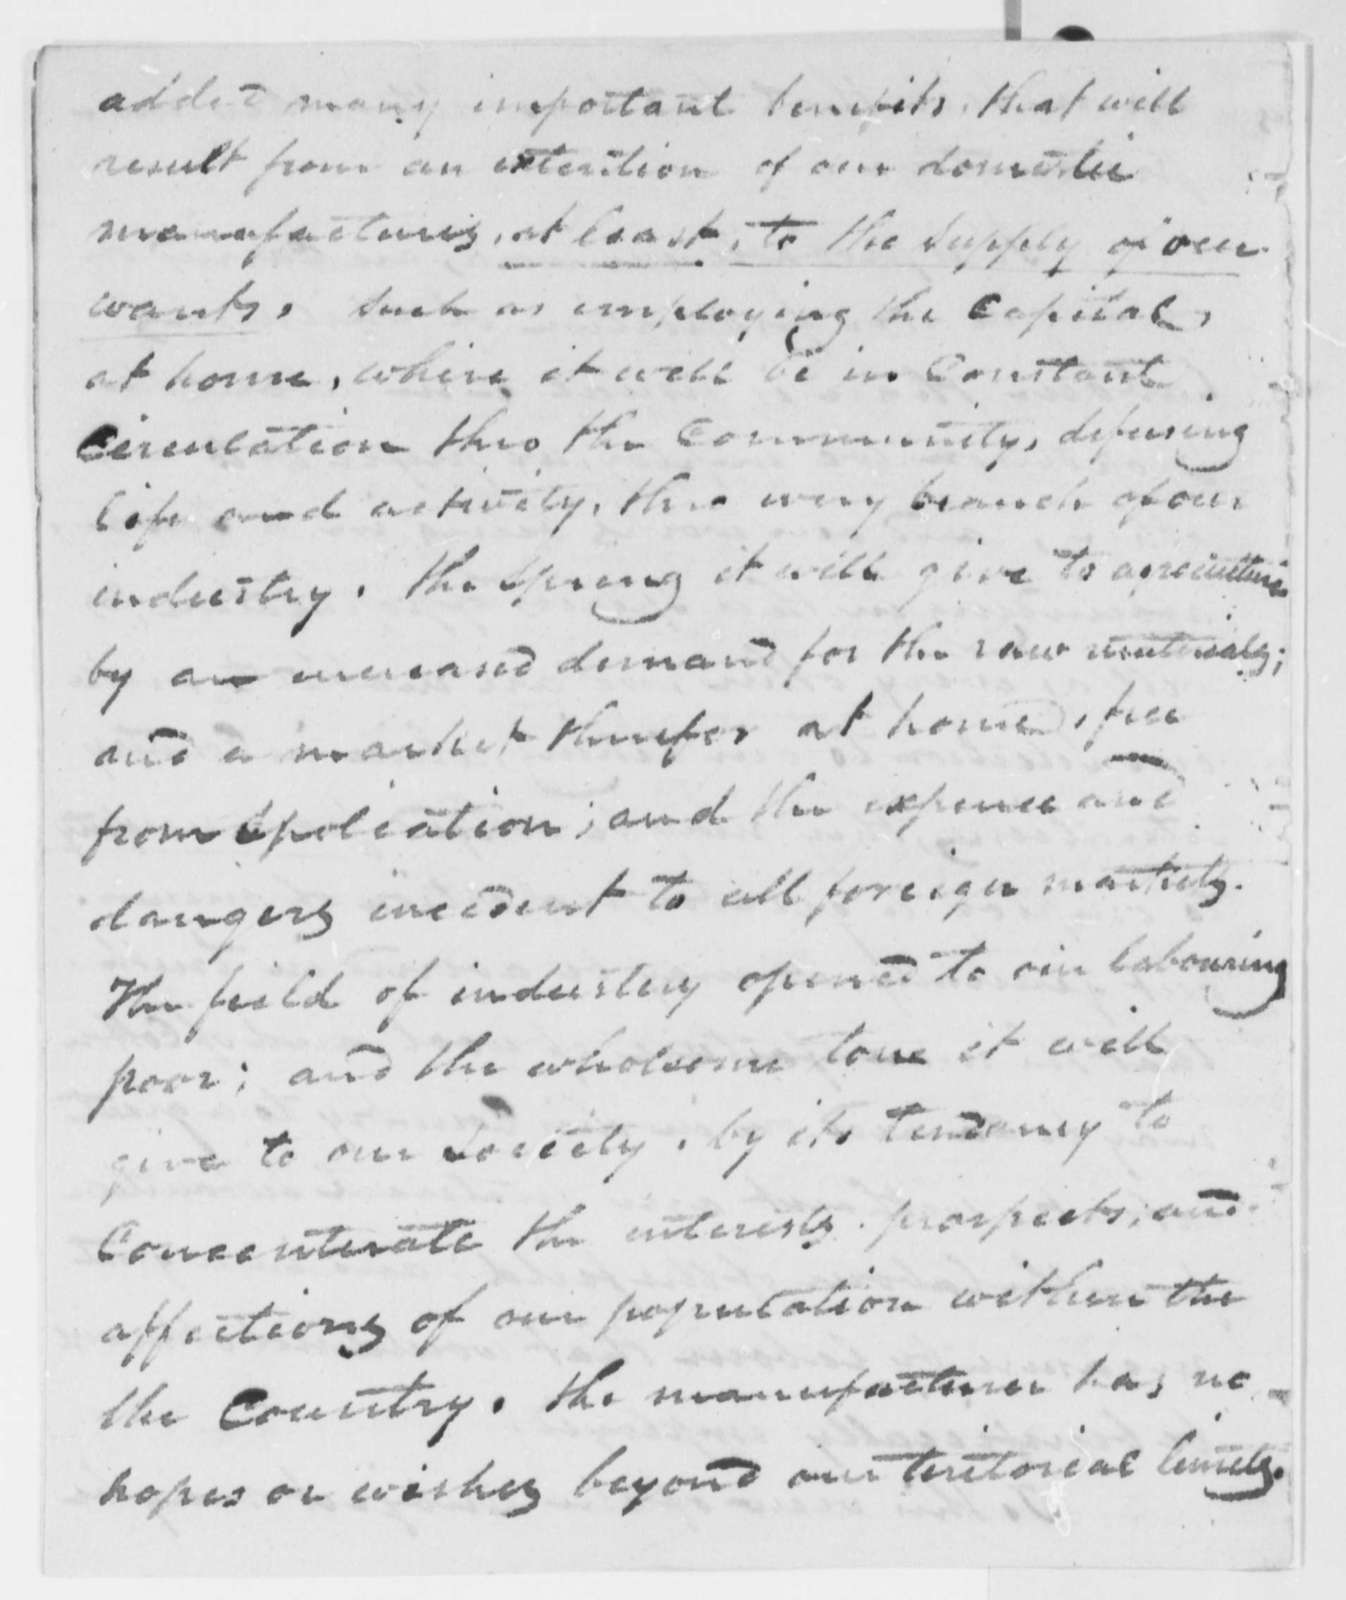 Anonymous to Thomas Jefferson, March 6, 1816